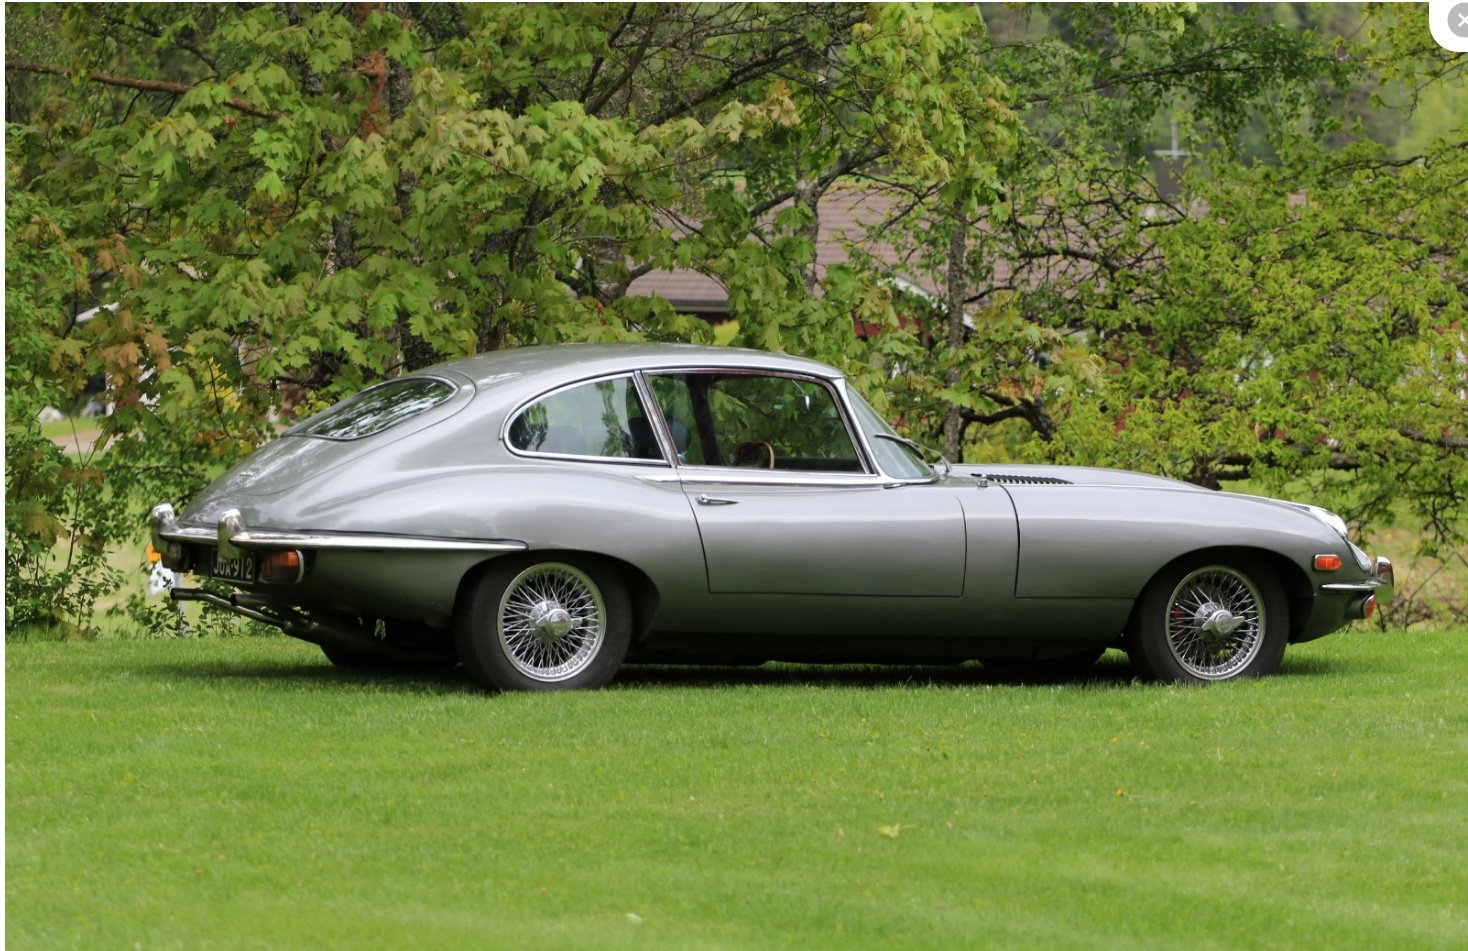 1969 Jaguar E-Type 2+2 - matching numbers! For Sale (picture 1 of 6)